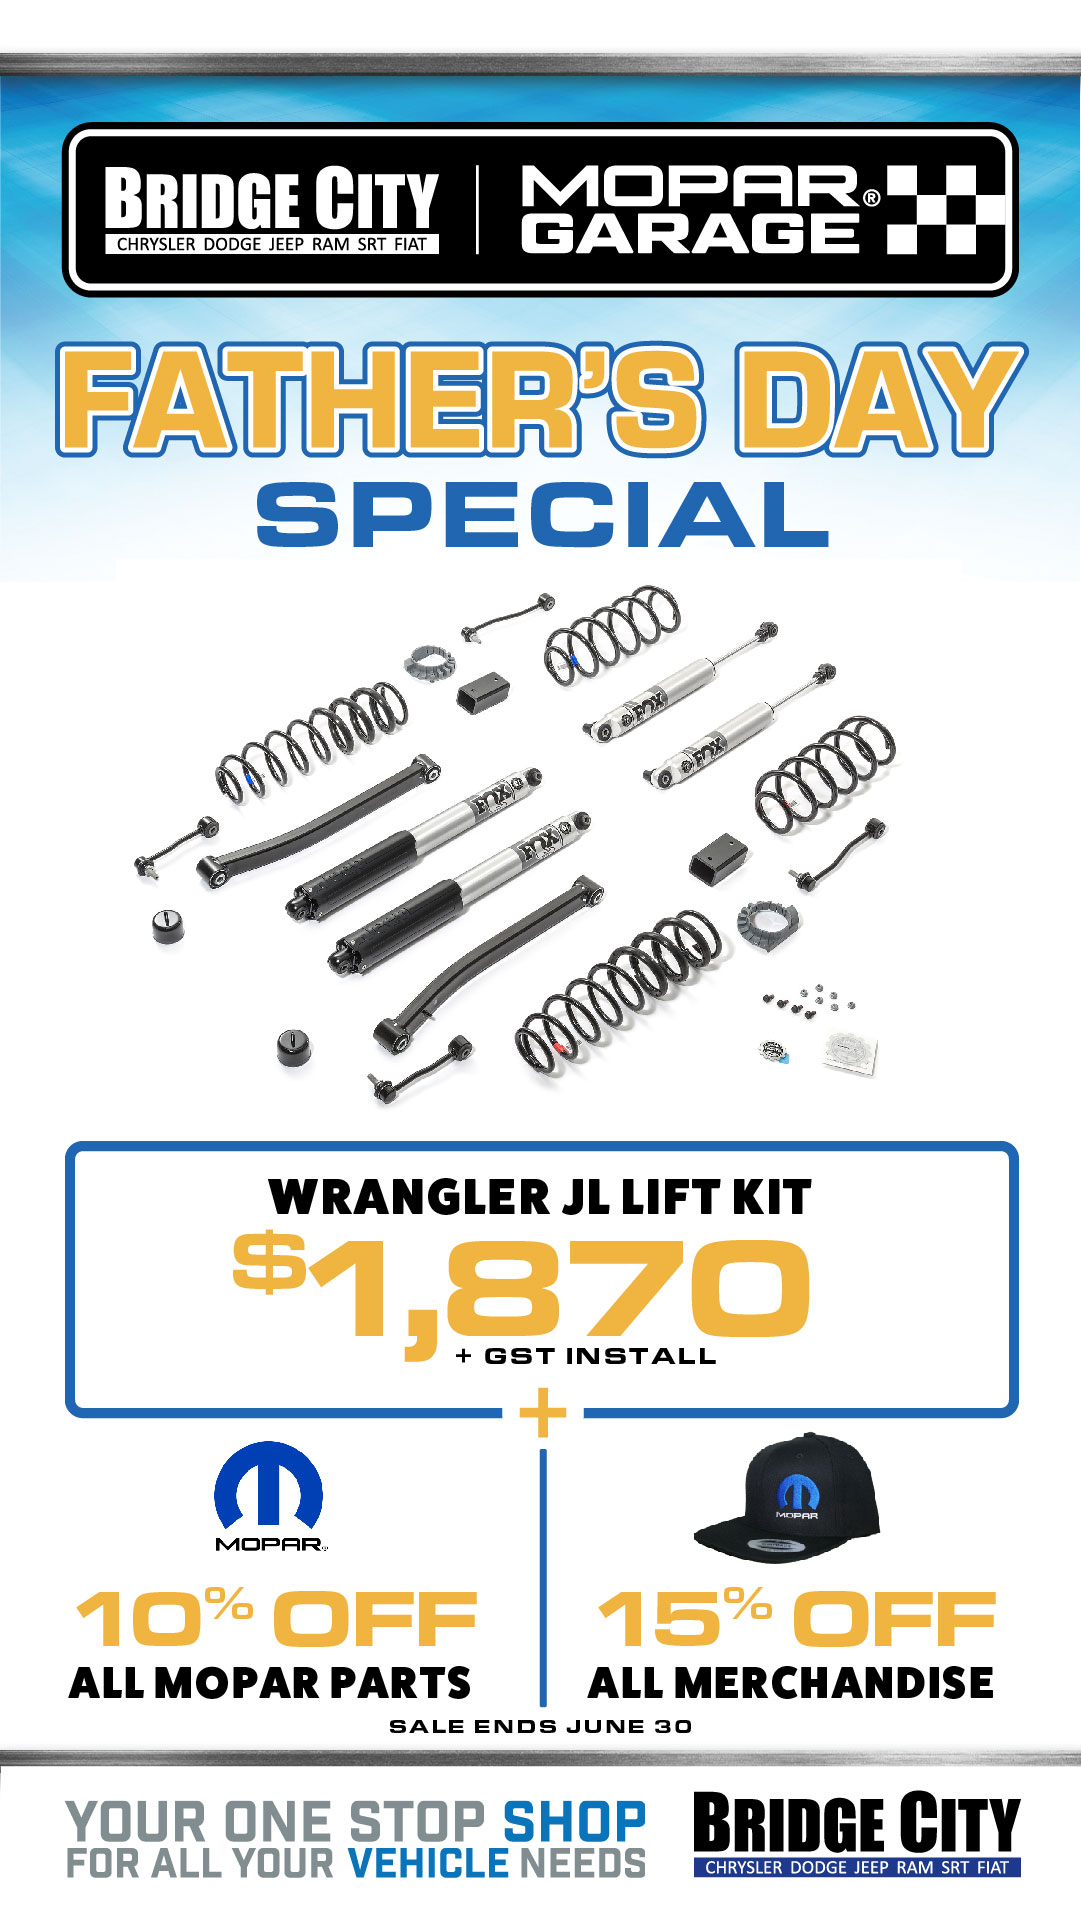 ram htm new jeep chrysler specials connell contact dealership parts dodge dealer